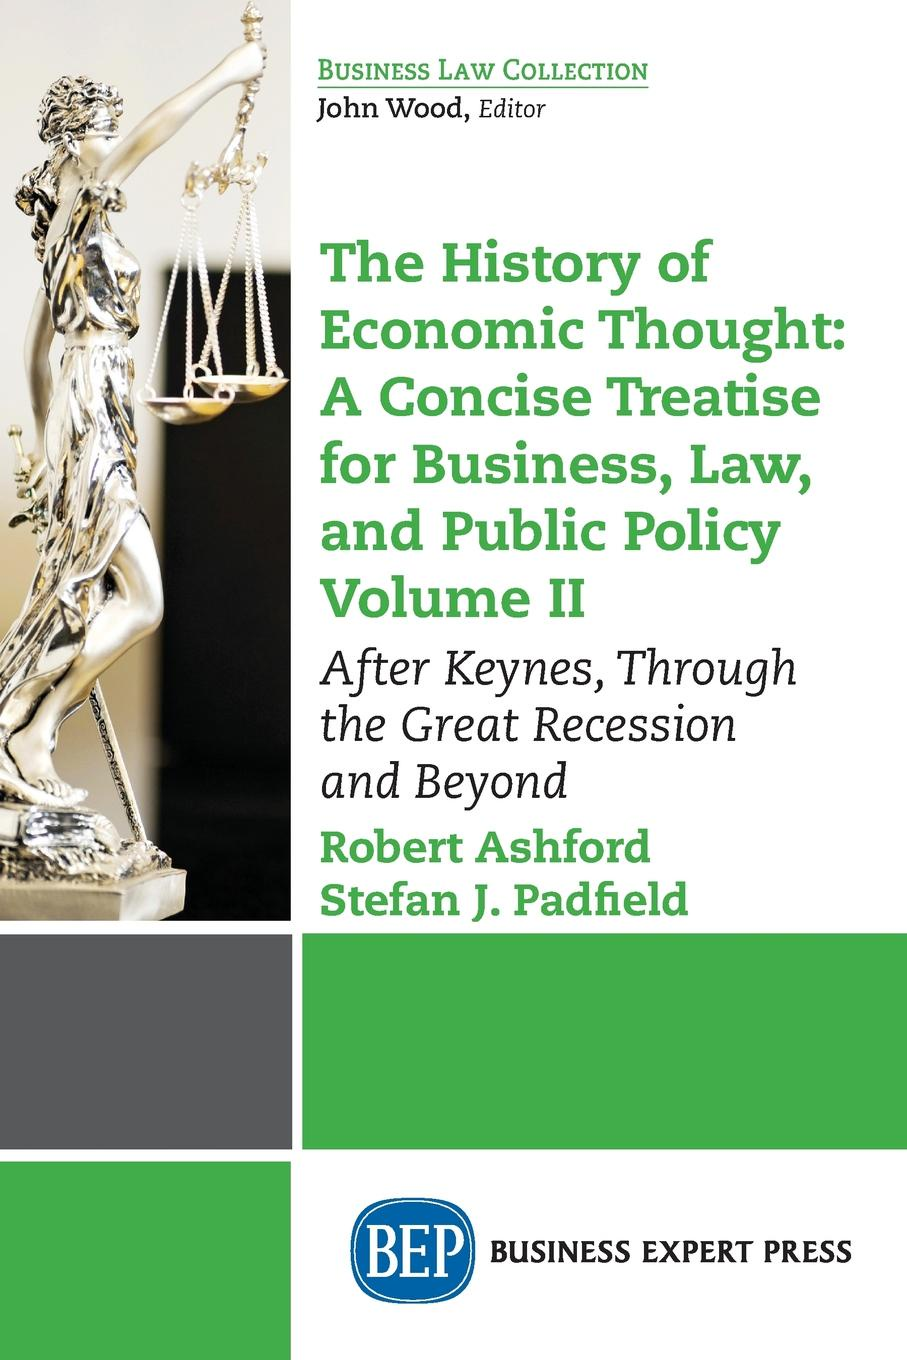 Robert Ashford, Stefan J. Padfield The History of Economic Thought. A Concise Treatise for Business, Law, and Public Policy Volume II: After Keynes, Through the Great Recession and Beyond kuno meyer cain adamnain an old irish treatise on the law of adamnan